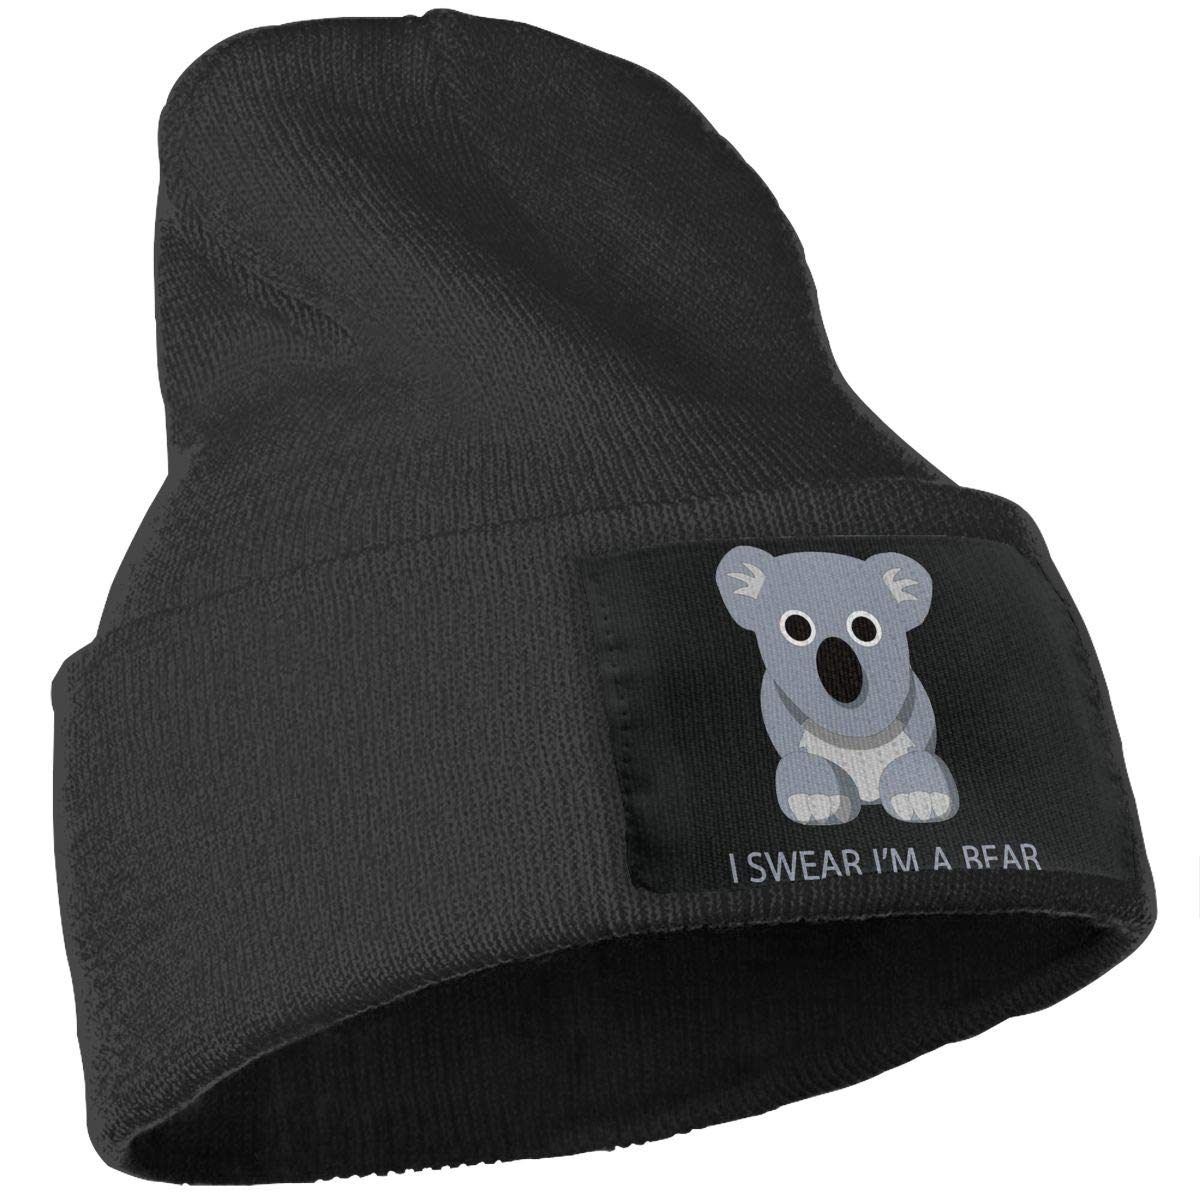 SLADDD1 I Swear Im A Bear Warm Winter Hat Knit Beanie Skull Cap Cuff Beanie Hat Winter Hats for Men /& Women